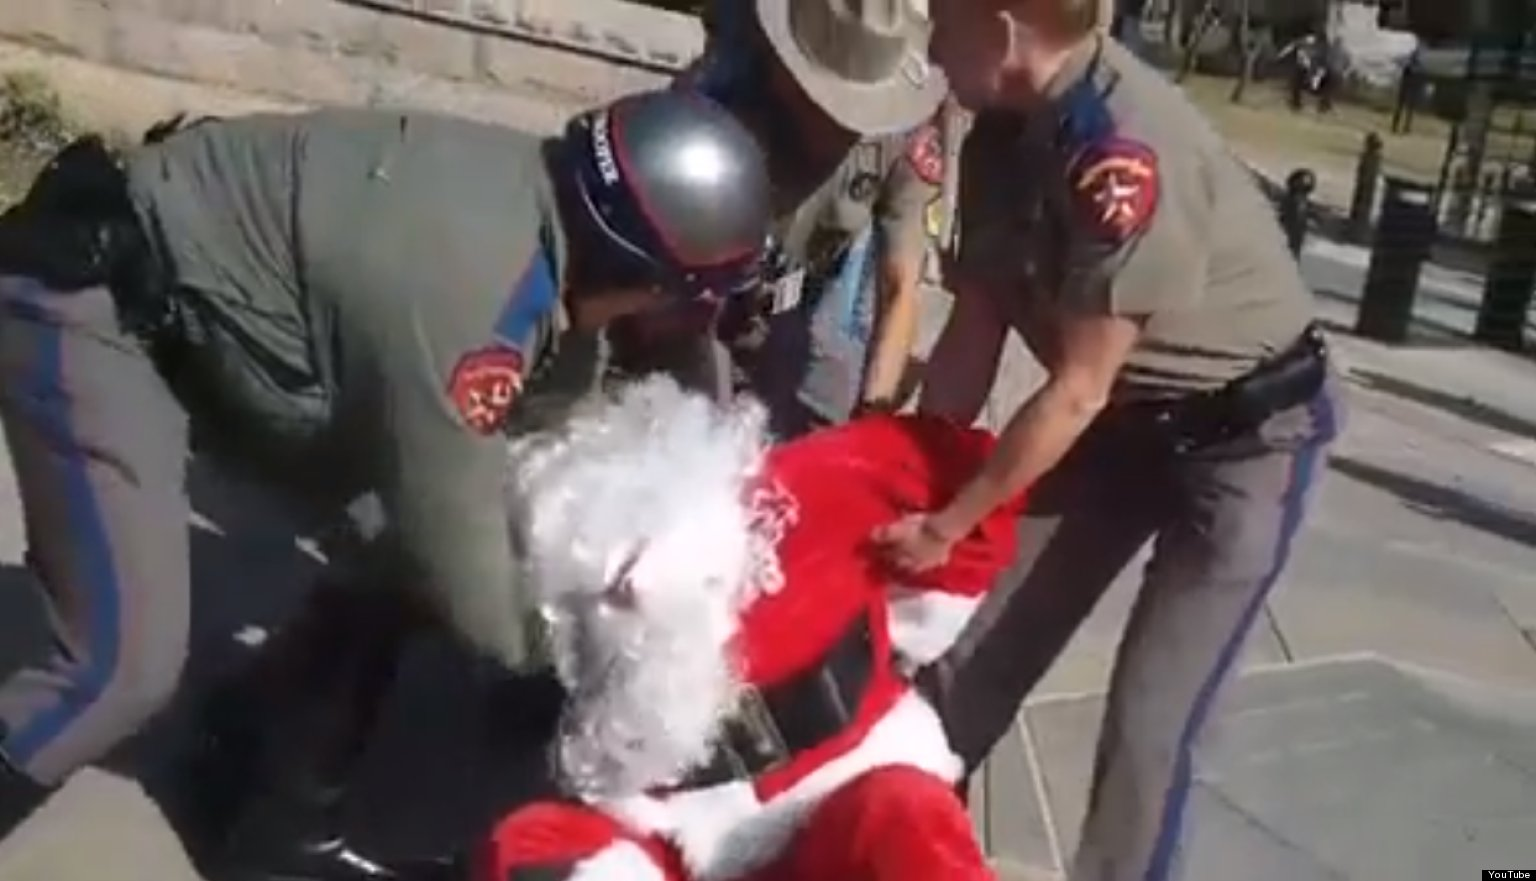 Santa Arrested In Austin For Drawing On Sidewalk With